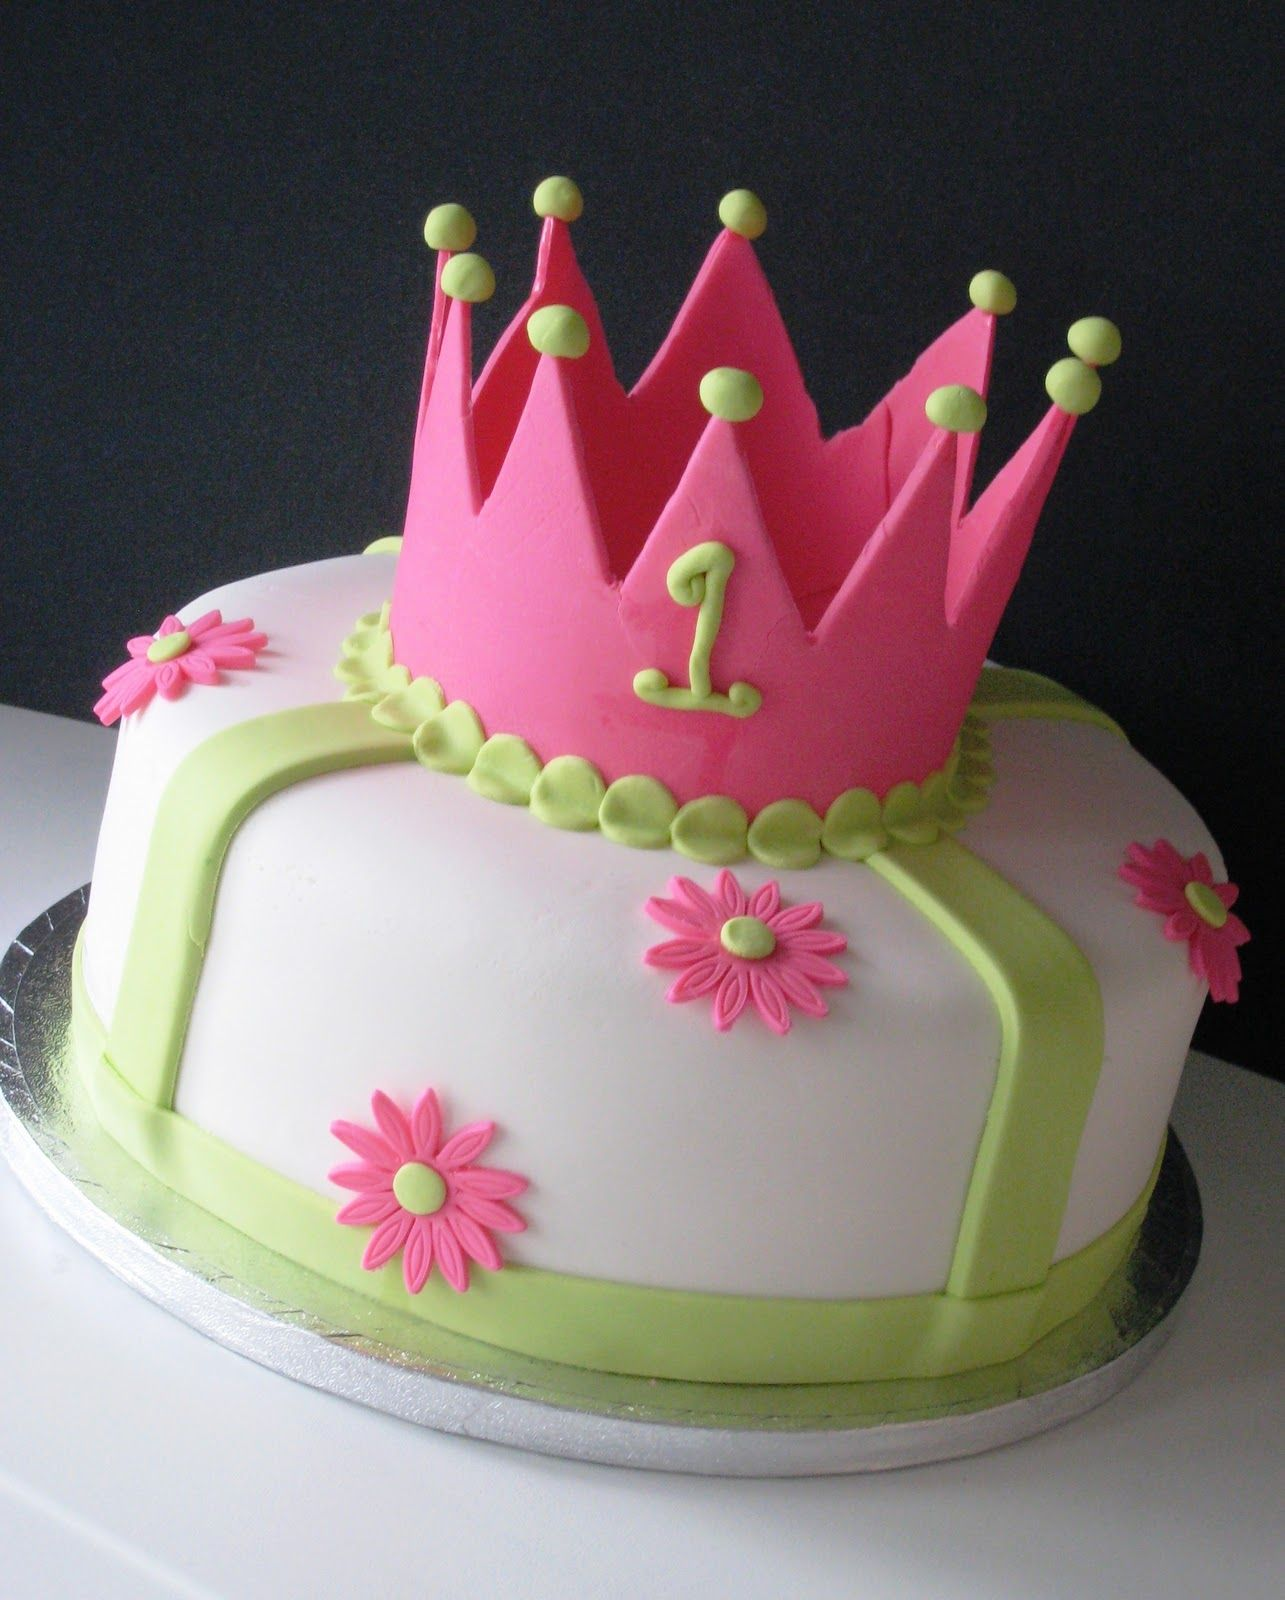 Princess Cakes For Little Girls Top I Love The Bright Colors On - Cakes for princess birthday